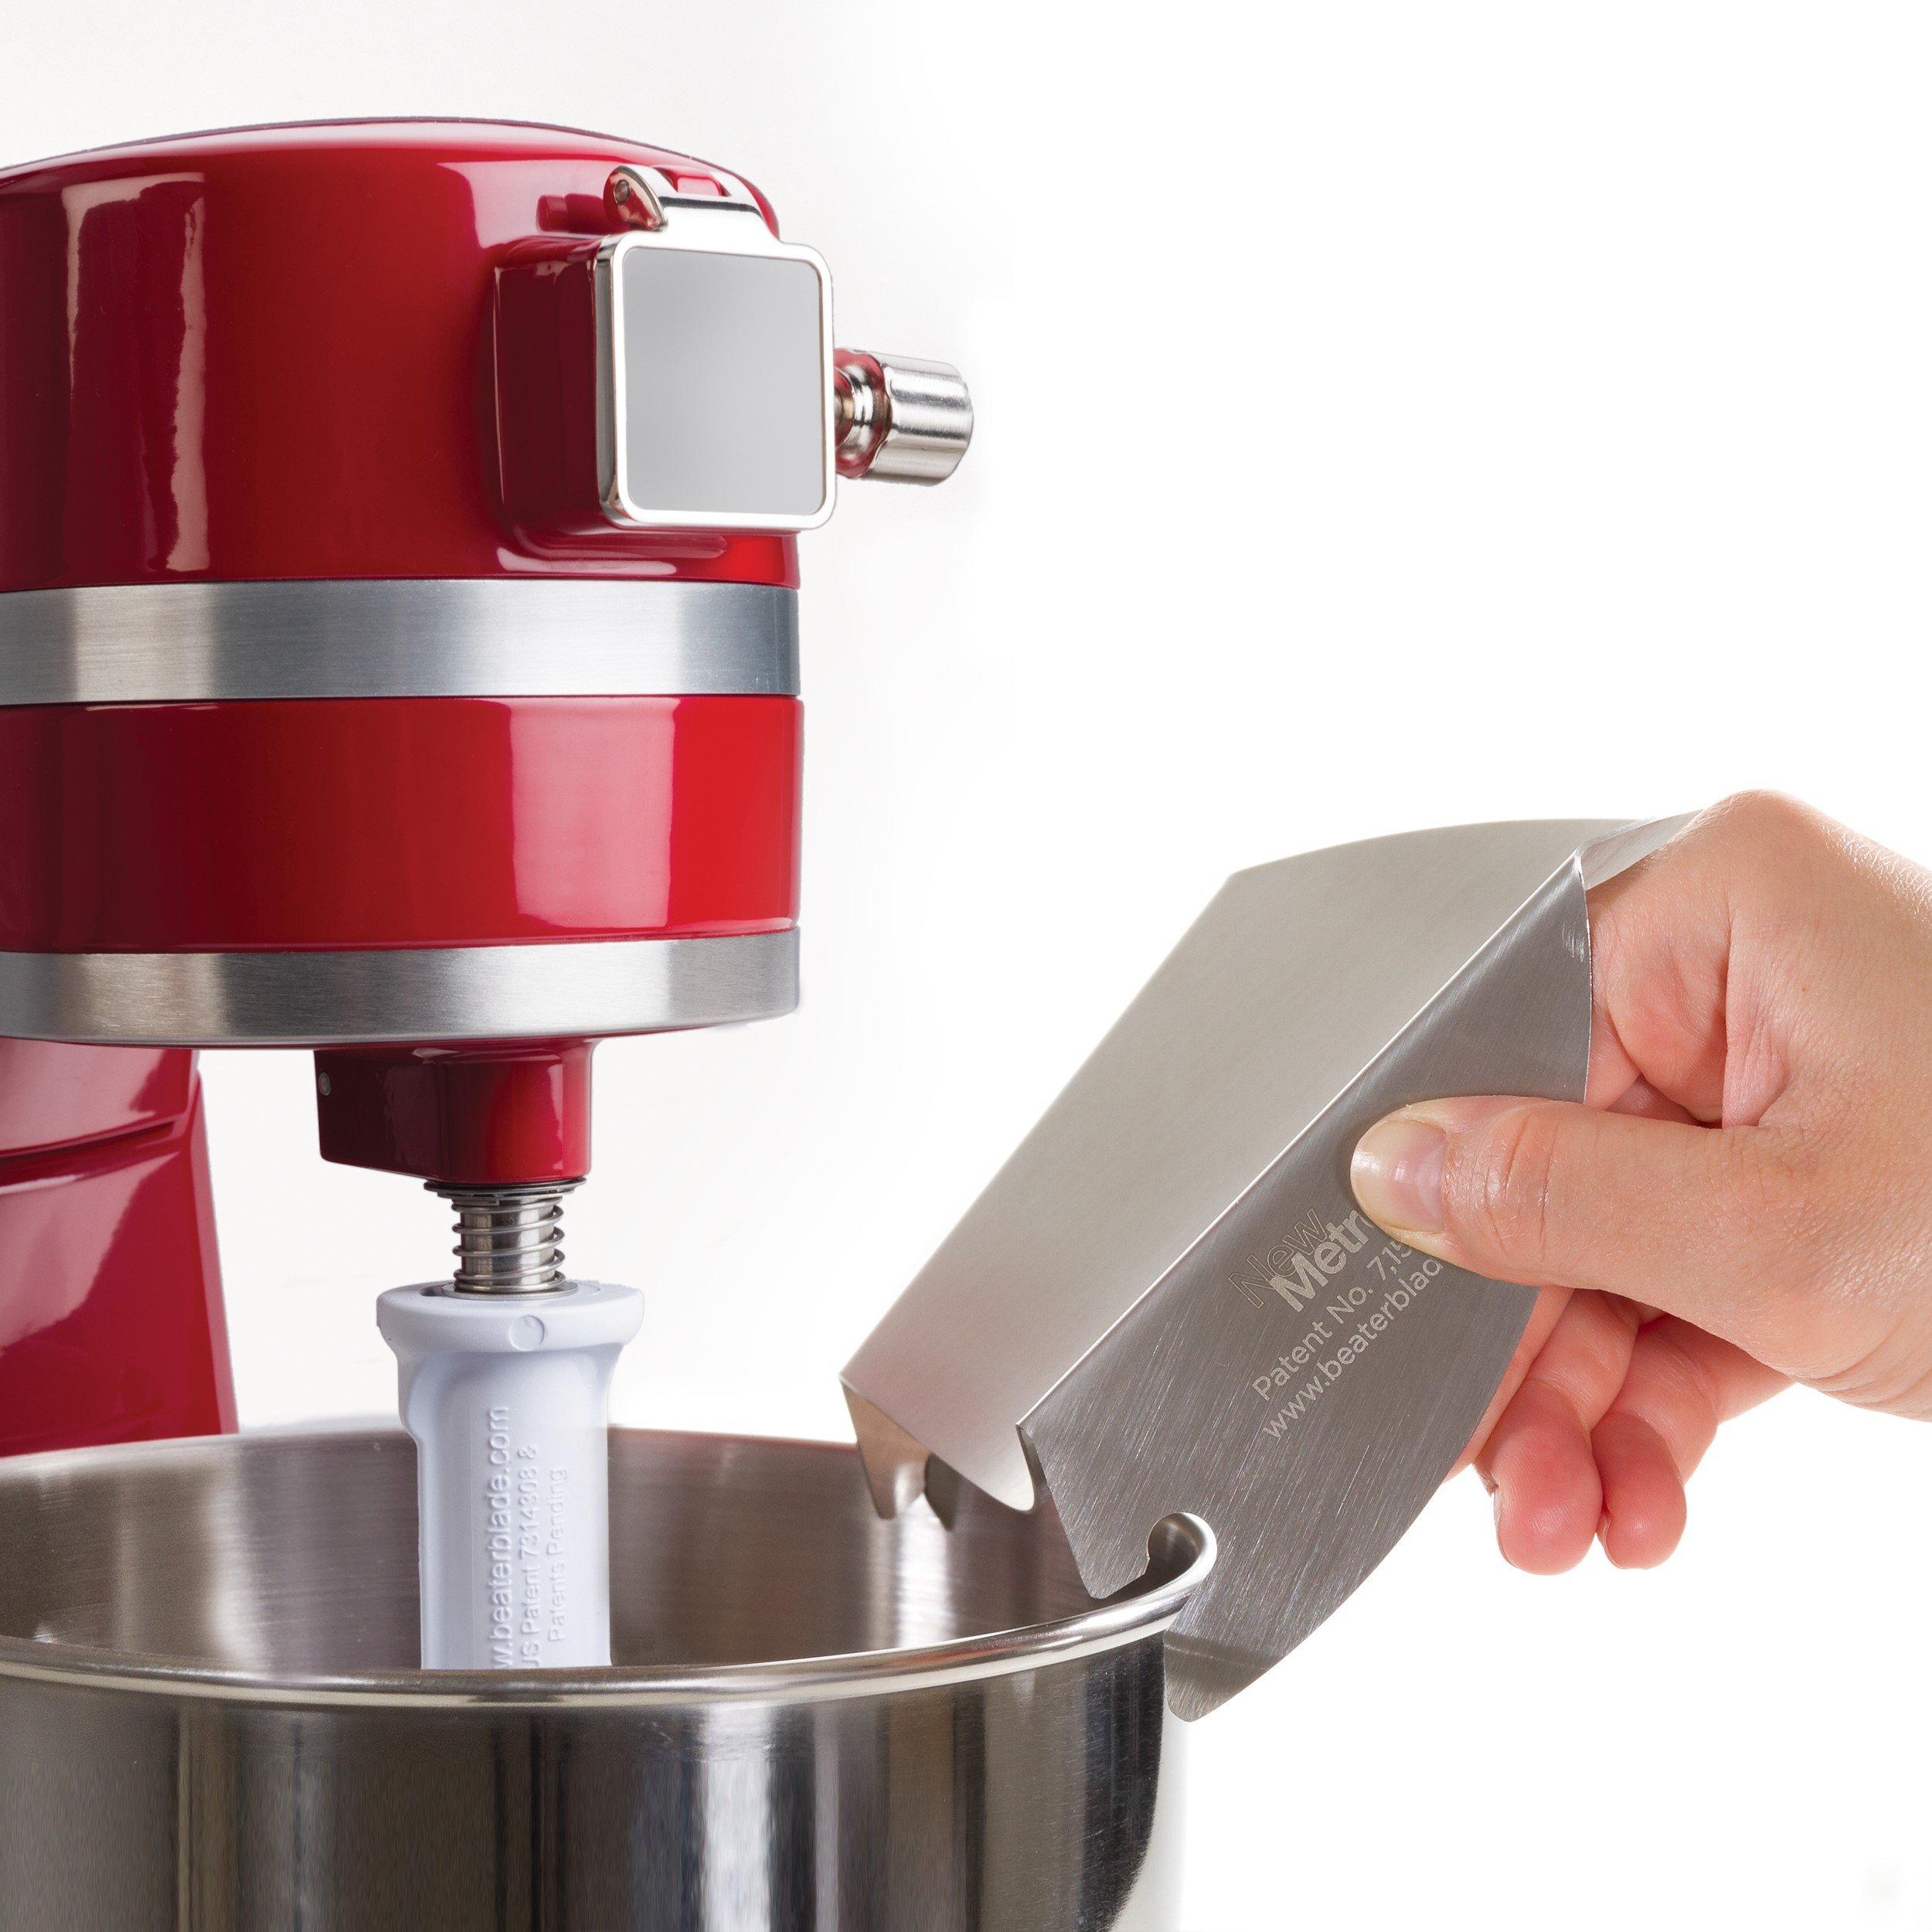 New Metro Design Universal Pouring Chute for Use with Stand Mixers with Metal Bowls, Stainless Steel by New Metro Design (Image #2)